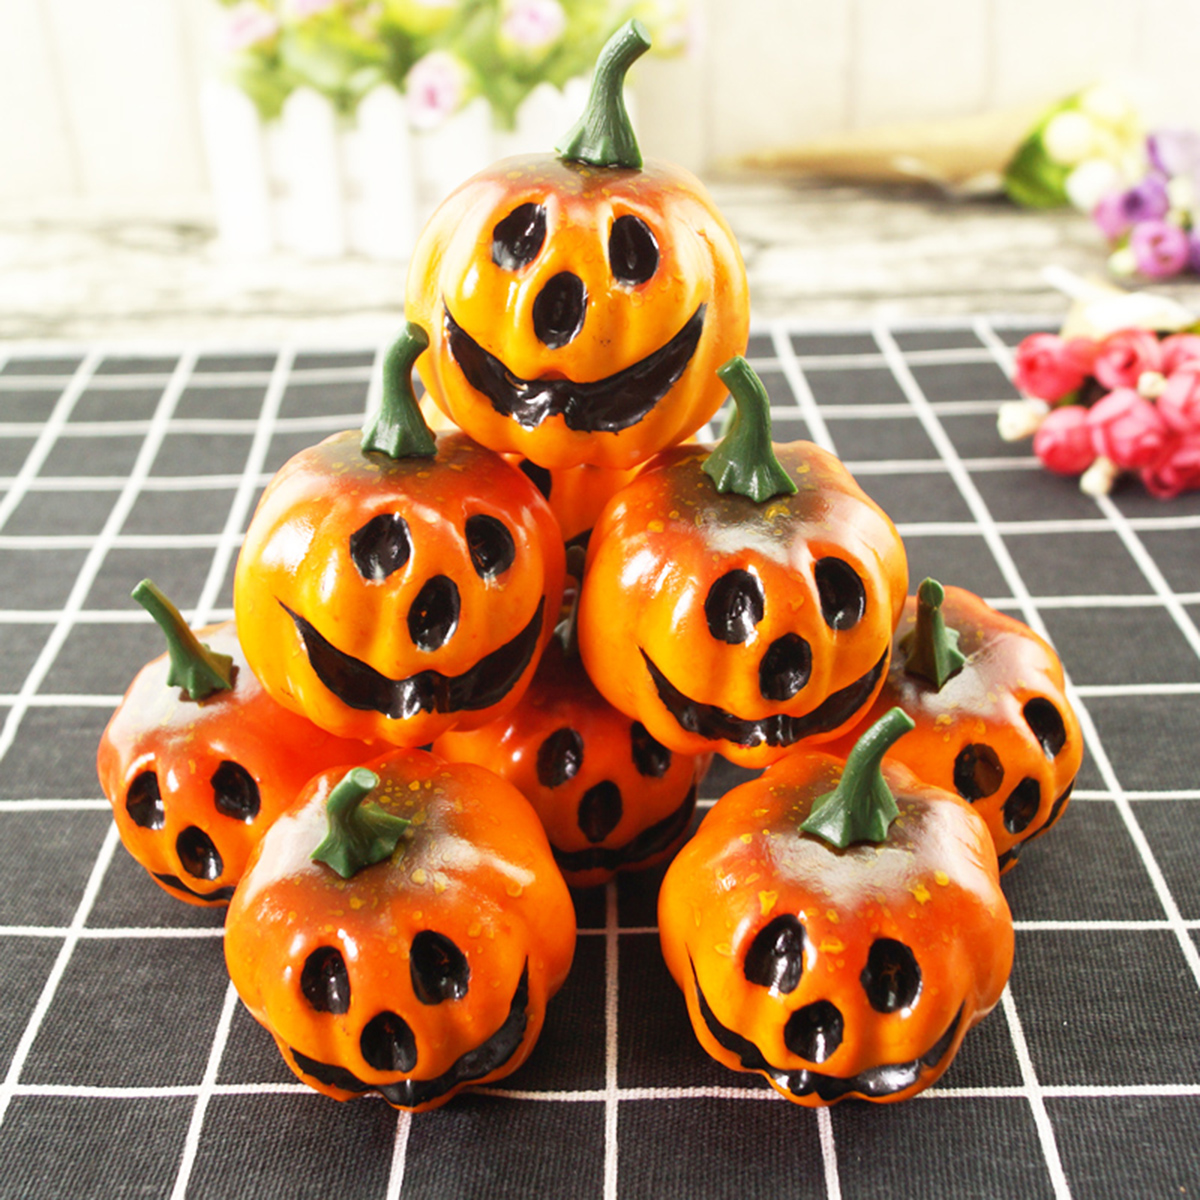 12 pcs simulation artificial lifelike small foam pumpkins carved